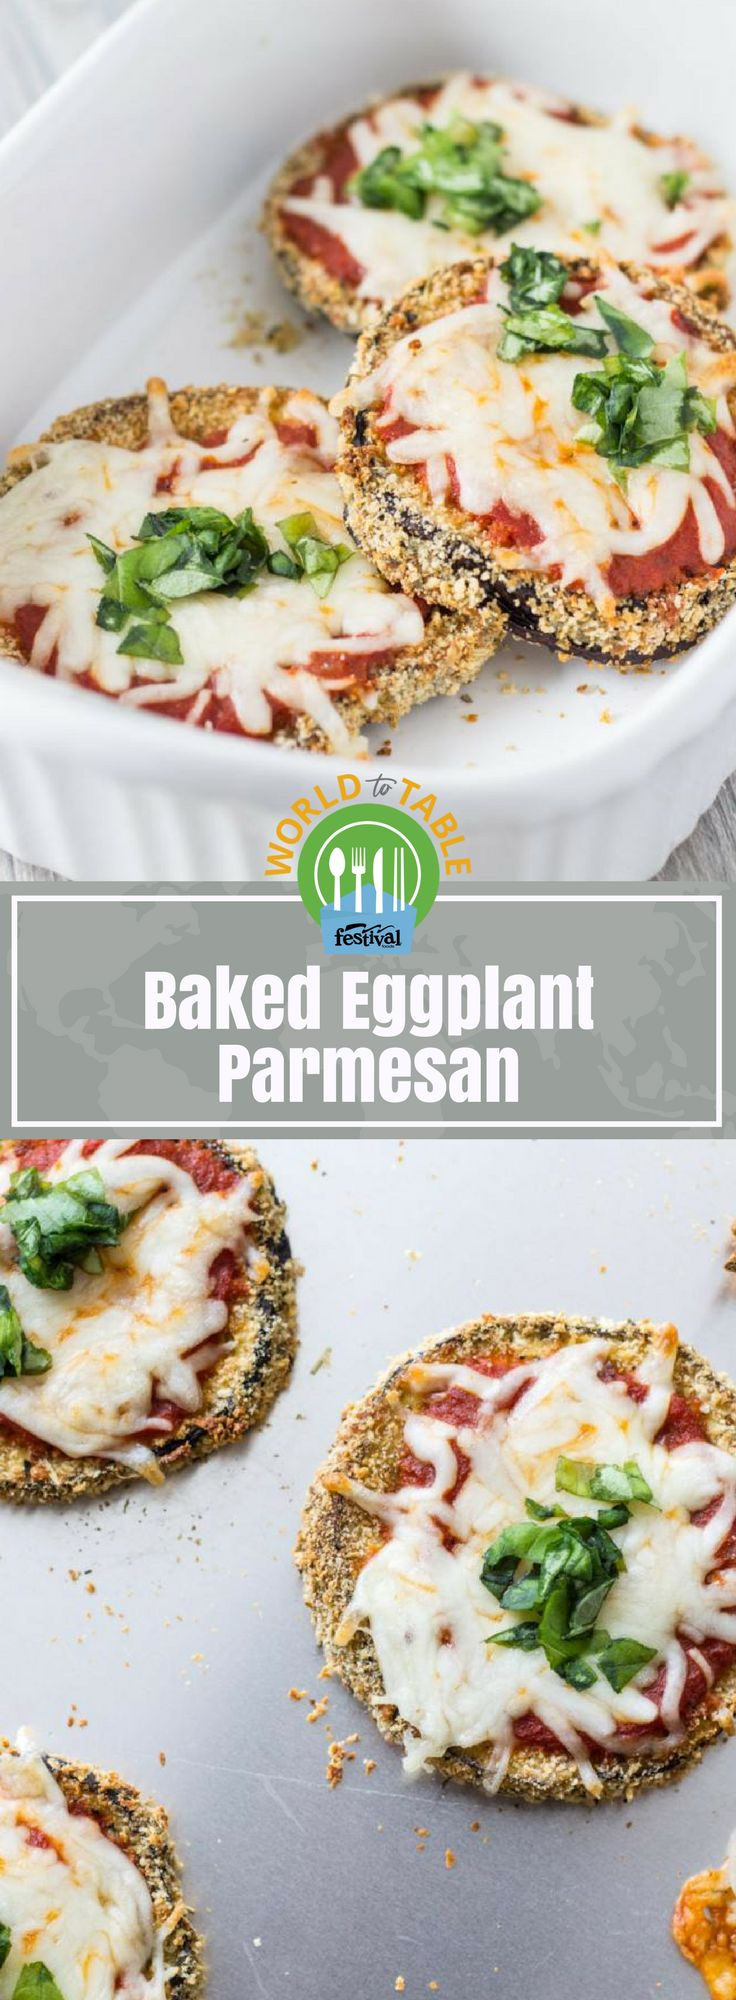 Like mini pizzas, Baked Eggplant Parmesan featureseggplantslices dipped in a parmesan-panko crust and topped with marinara sauce, melty mozzarella and fresh basil. This easy dish is a fun, kid-friendly way to enjoy this unique veggie! #eggplant #parmesan #eggplantparmesan #mozzarella #panko #marinara #basil #kidfriendly #dinnerrecipes #easyrecipes #pizza #worldtotable